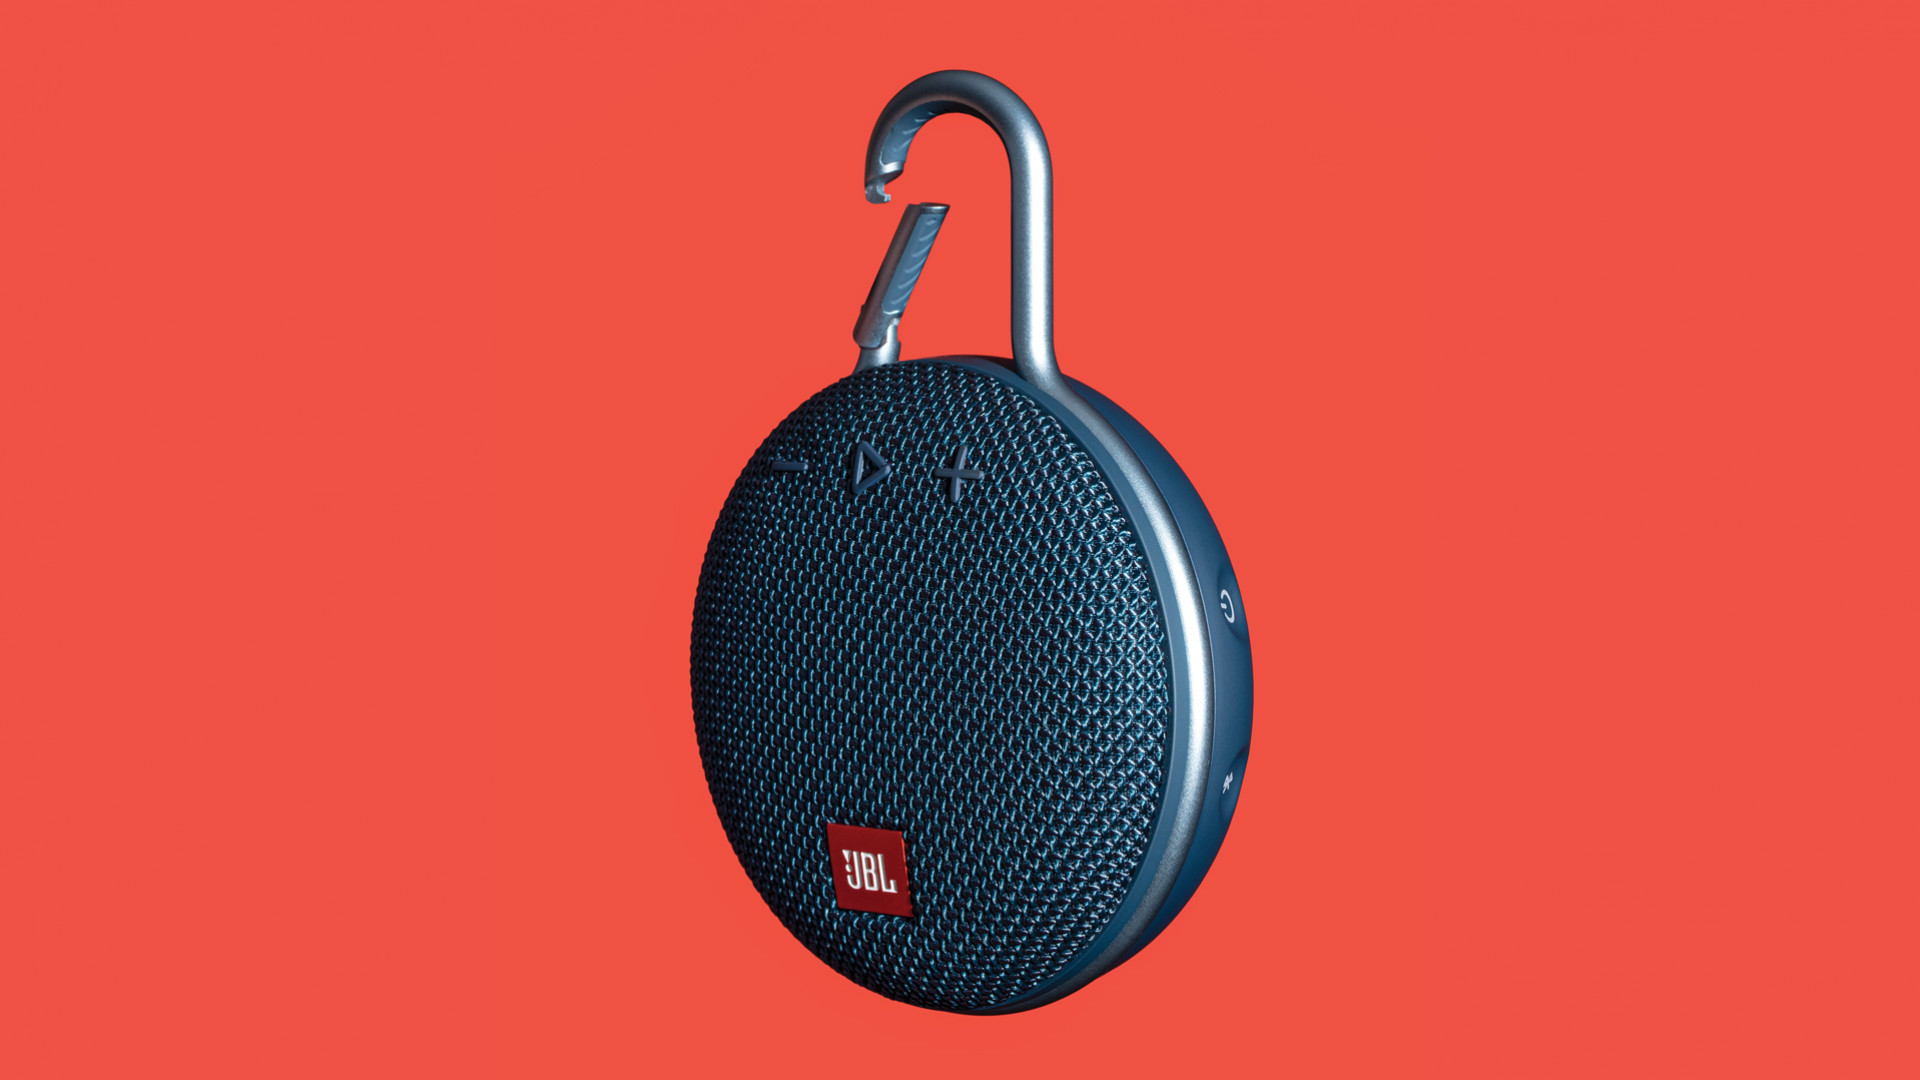 JBL Clip 3 Portable Waterproof Bluetooth Speaker